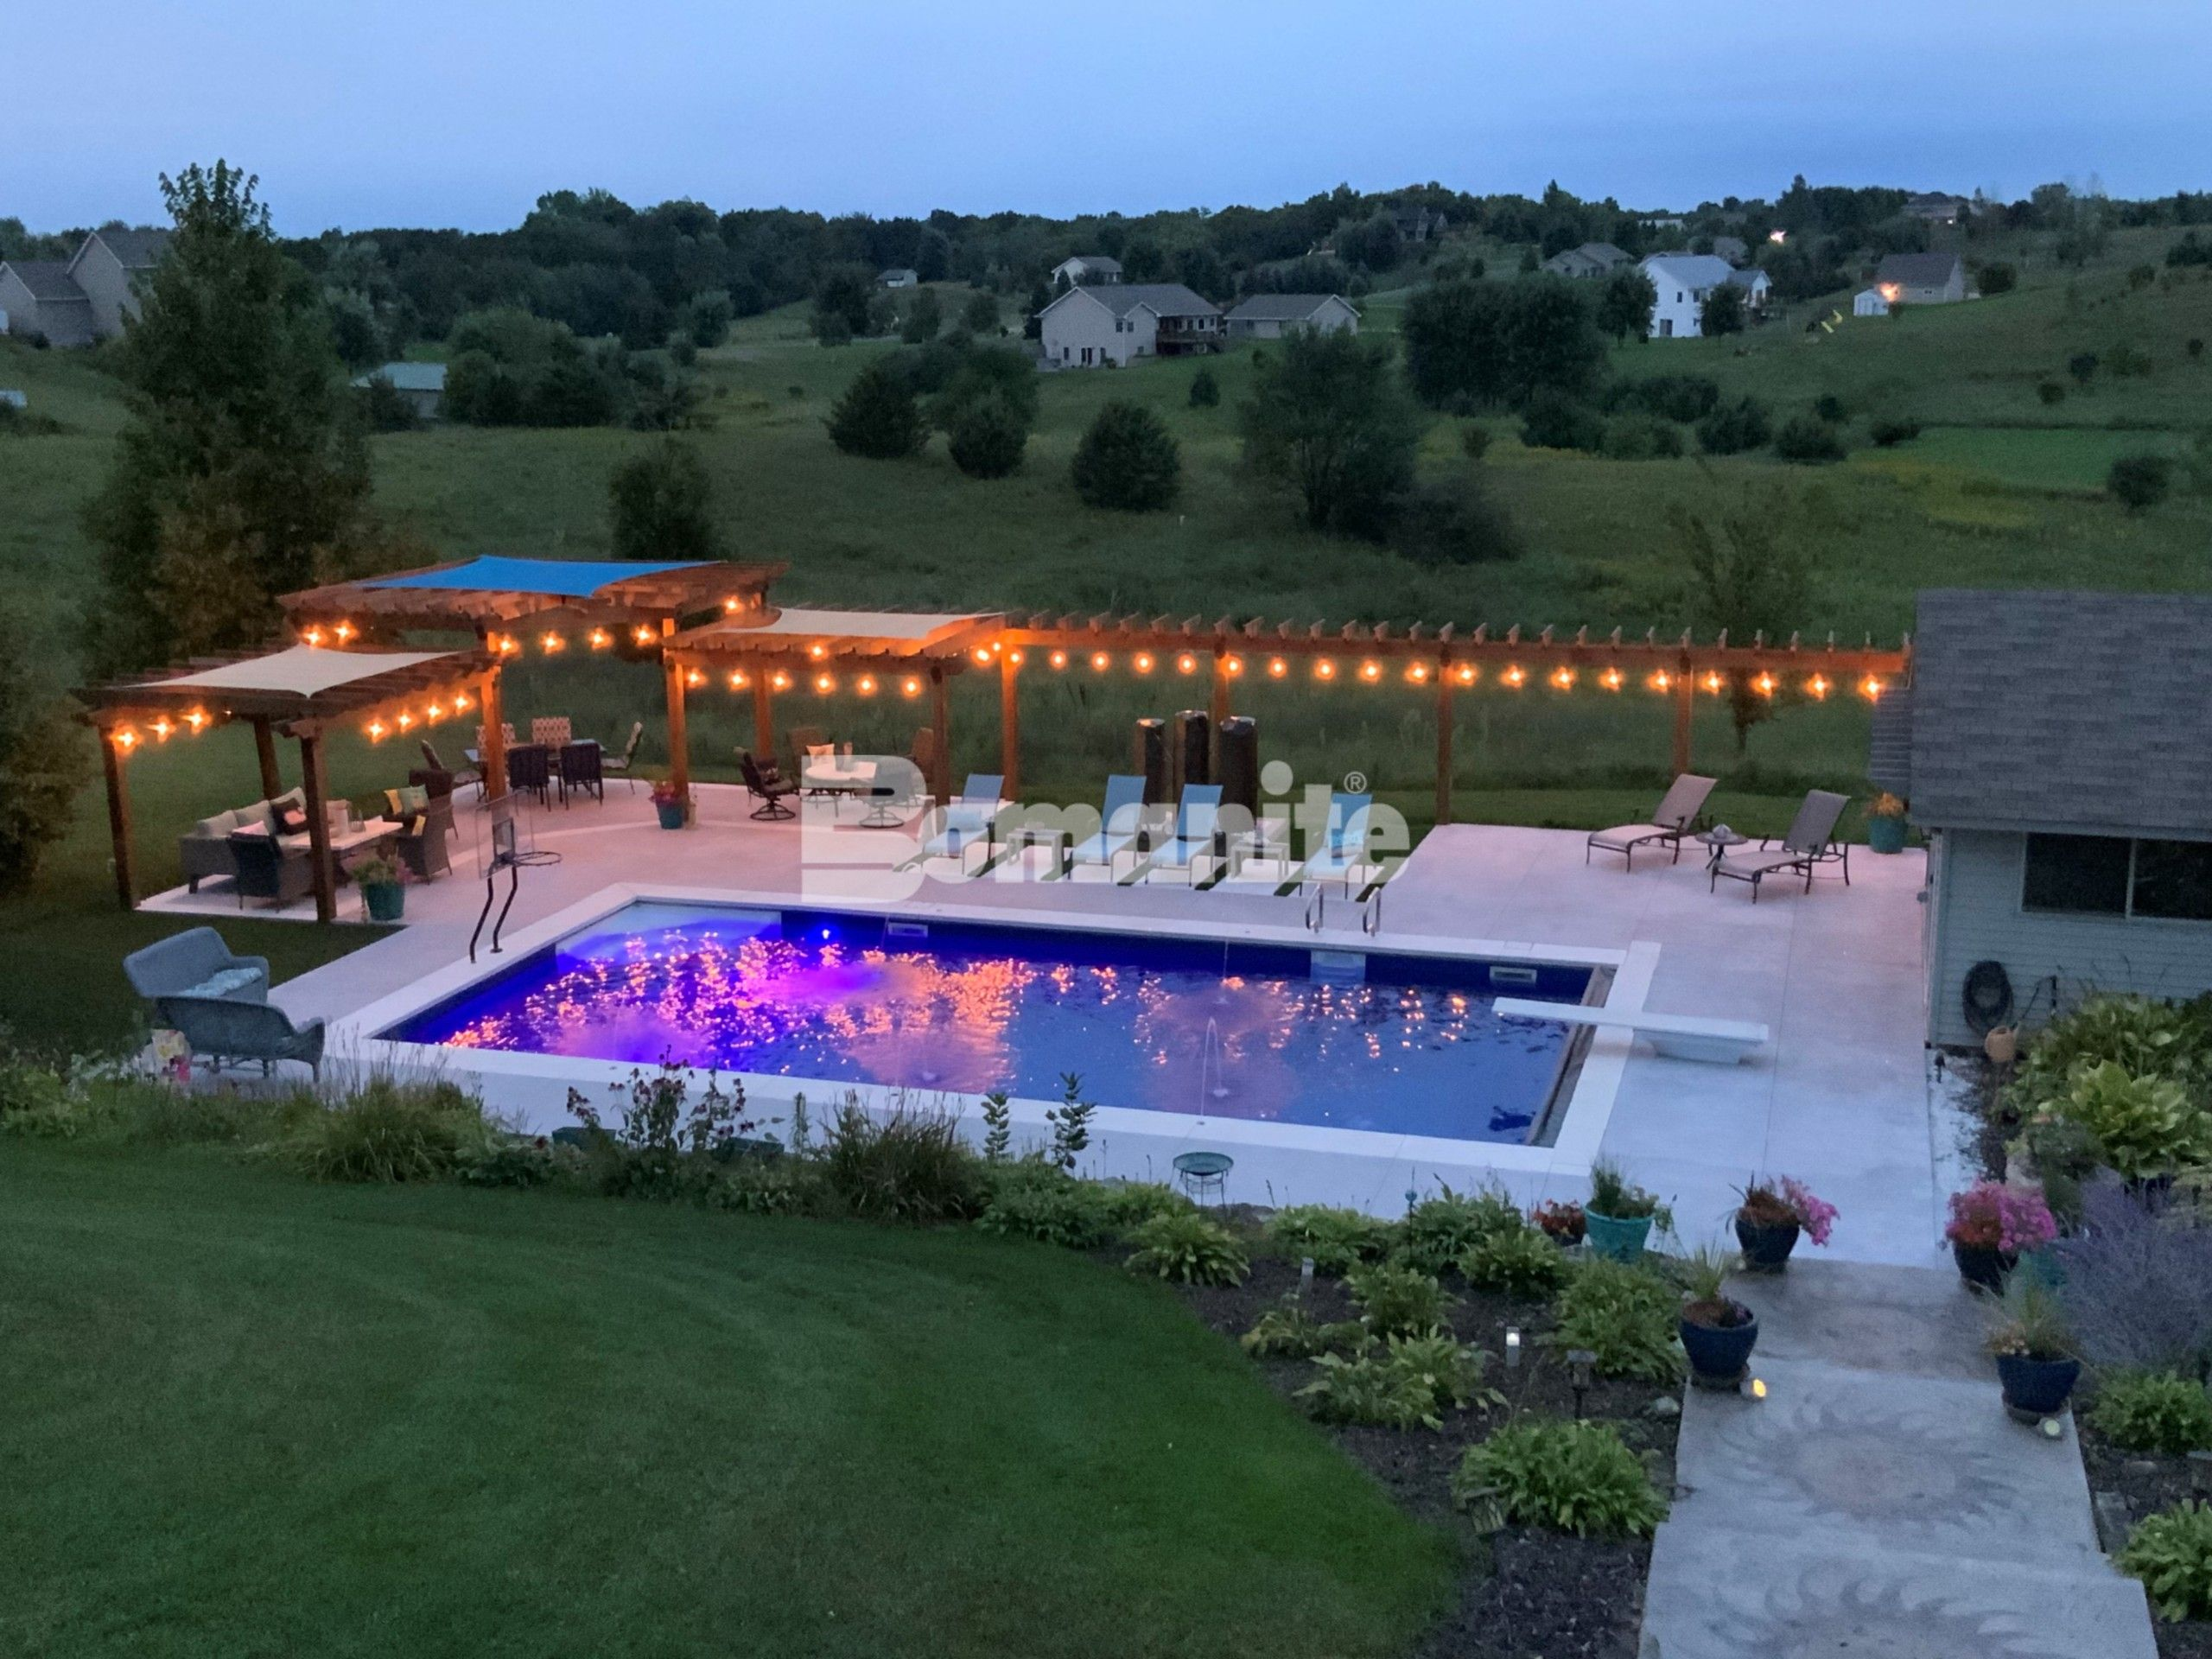 Concrete Arts, Inc. had the opportunity to create a stunning transformation for the homeowner's backyard renovation with the Bomanite Revealed Exposed Aggregate System supplying a slip-resistant, durable pool deck that caters to daytime relaxation and upscale evening gatherings.